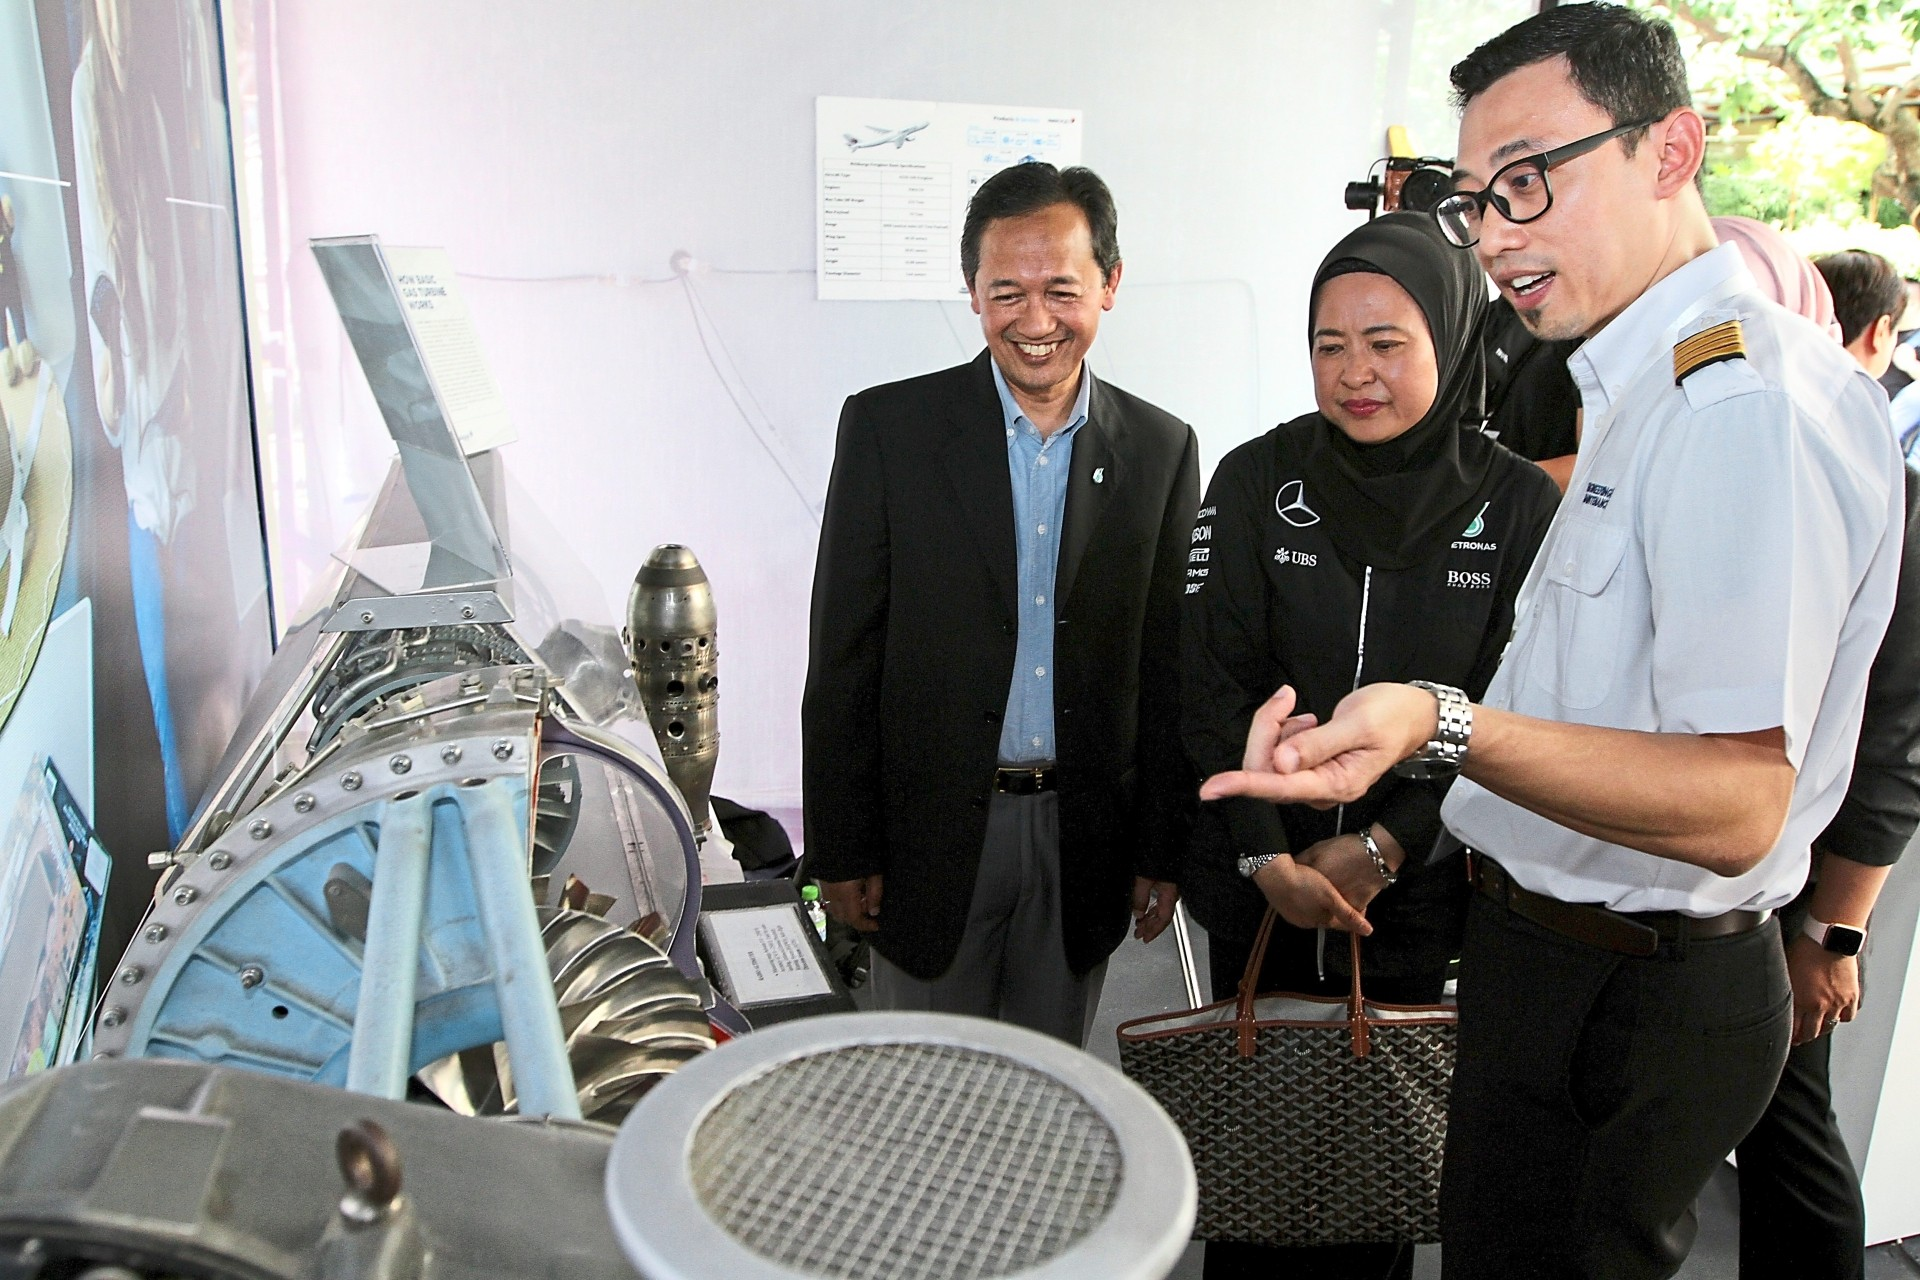 Licensed aircraft engineer Mohd Faridz Mohd Shuraimi (right) describing the  workings of a replica of a gas turbine engine to Zahariah (centre) at the Malaysia Airlines booth.